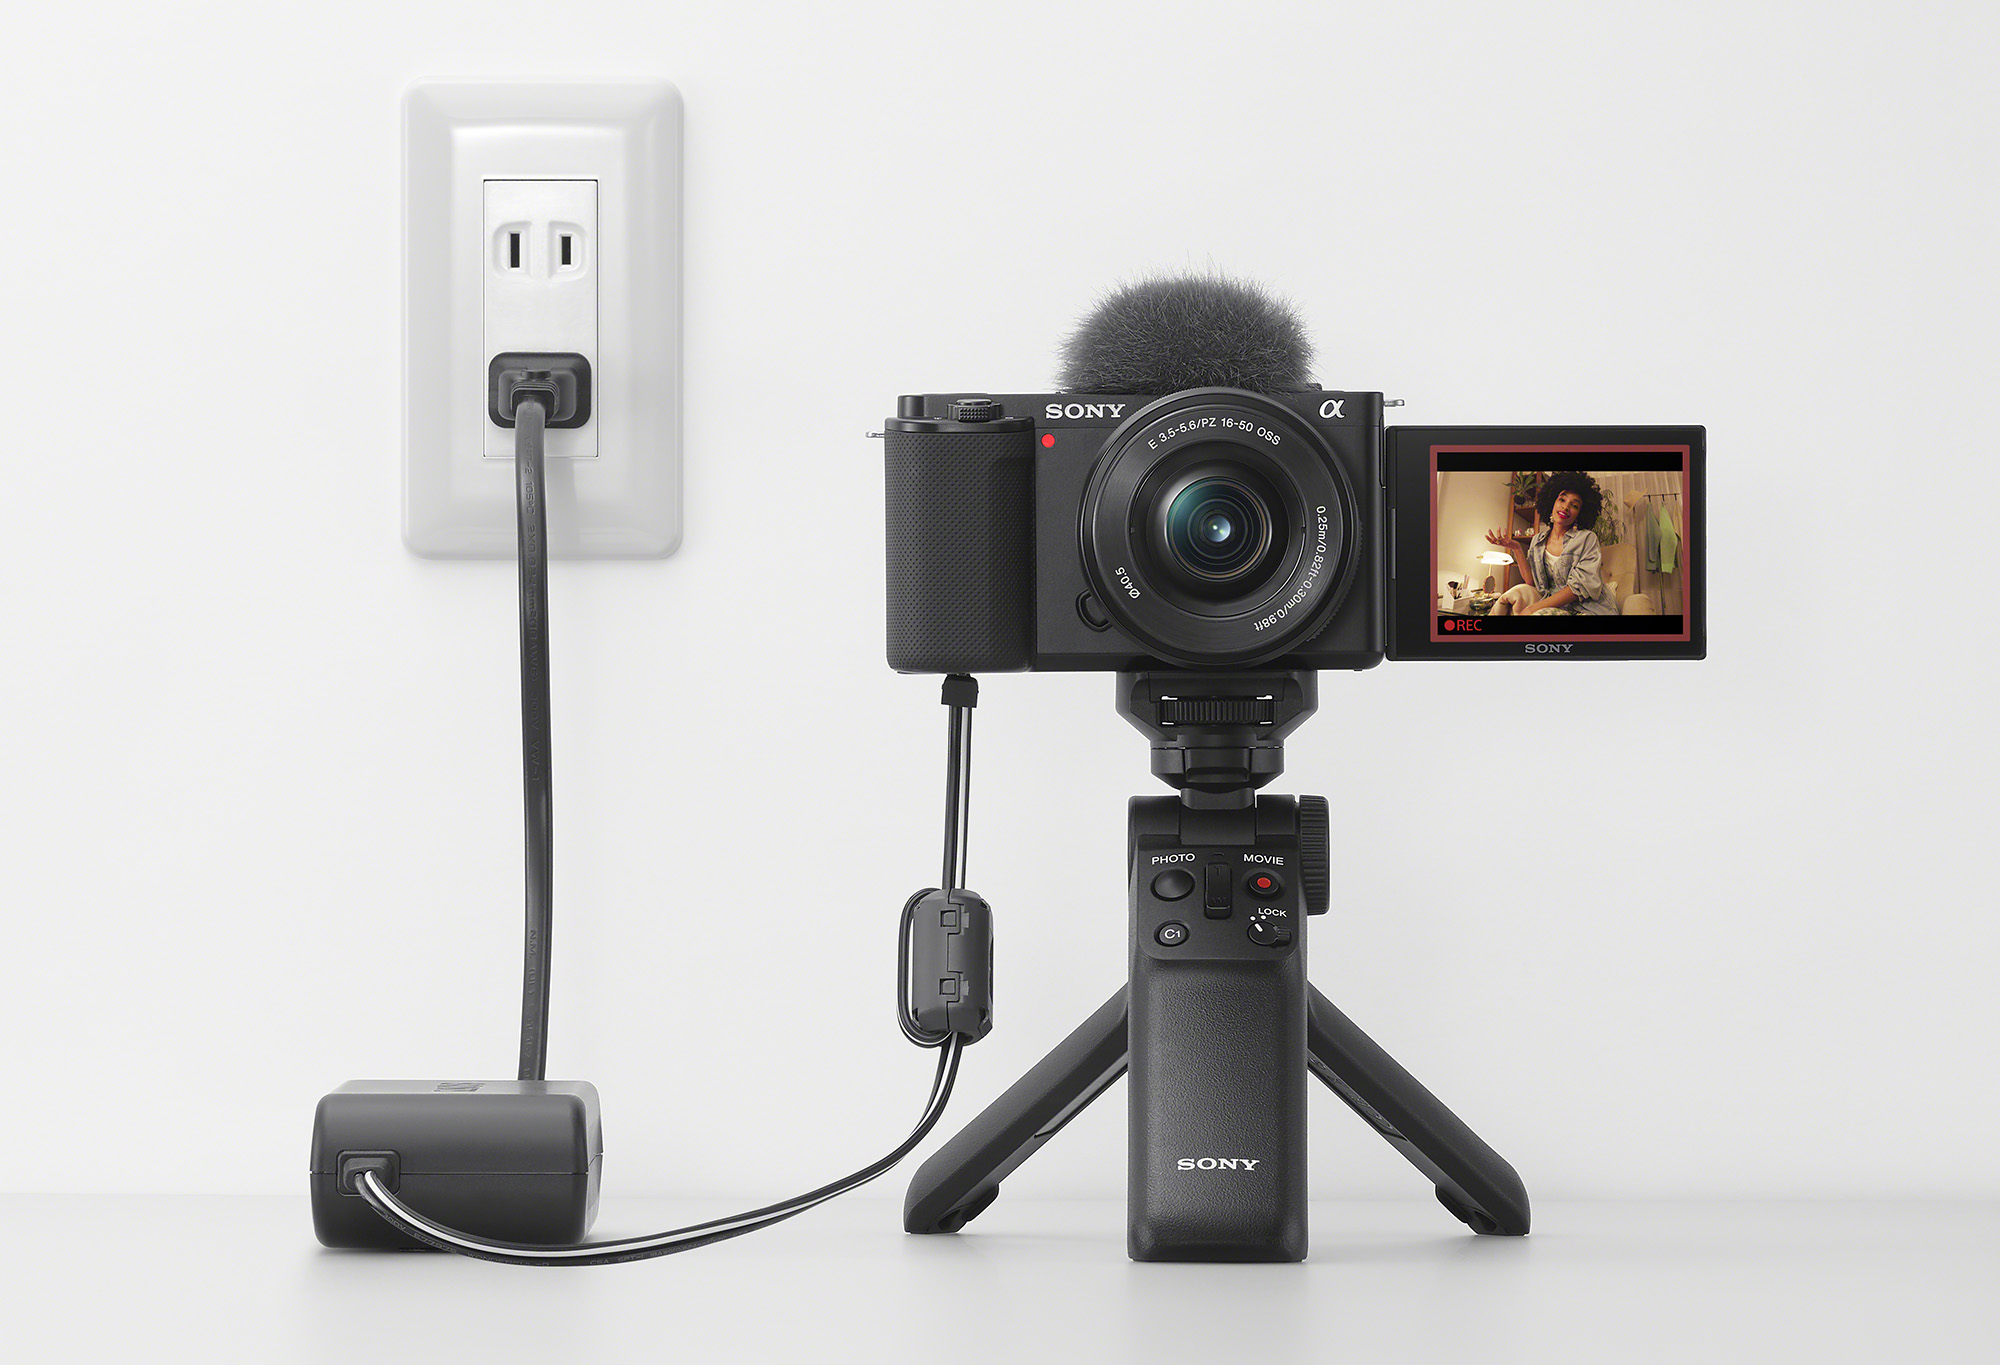 Sony's ZV-E10 brings interchangeable lenses to its vlogging camera series